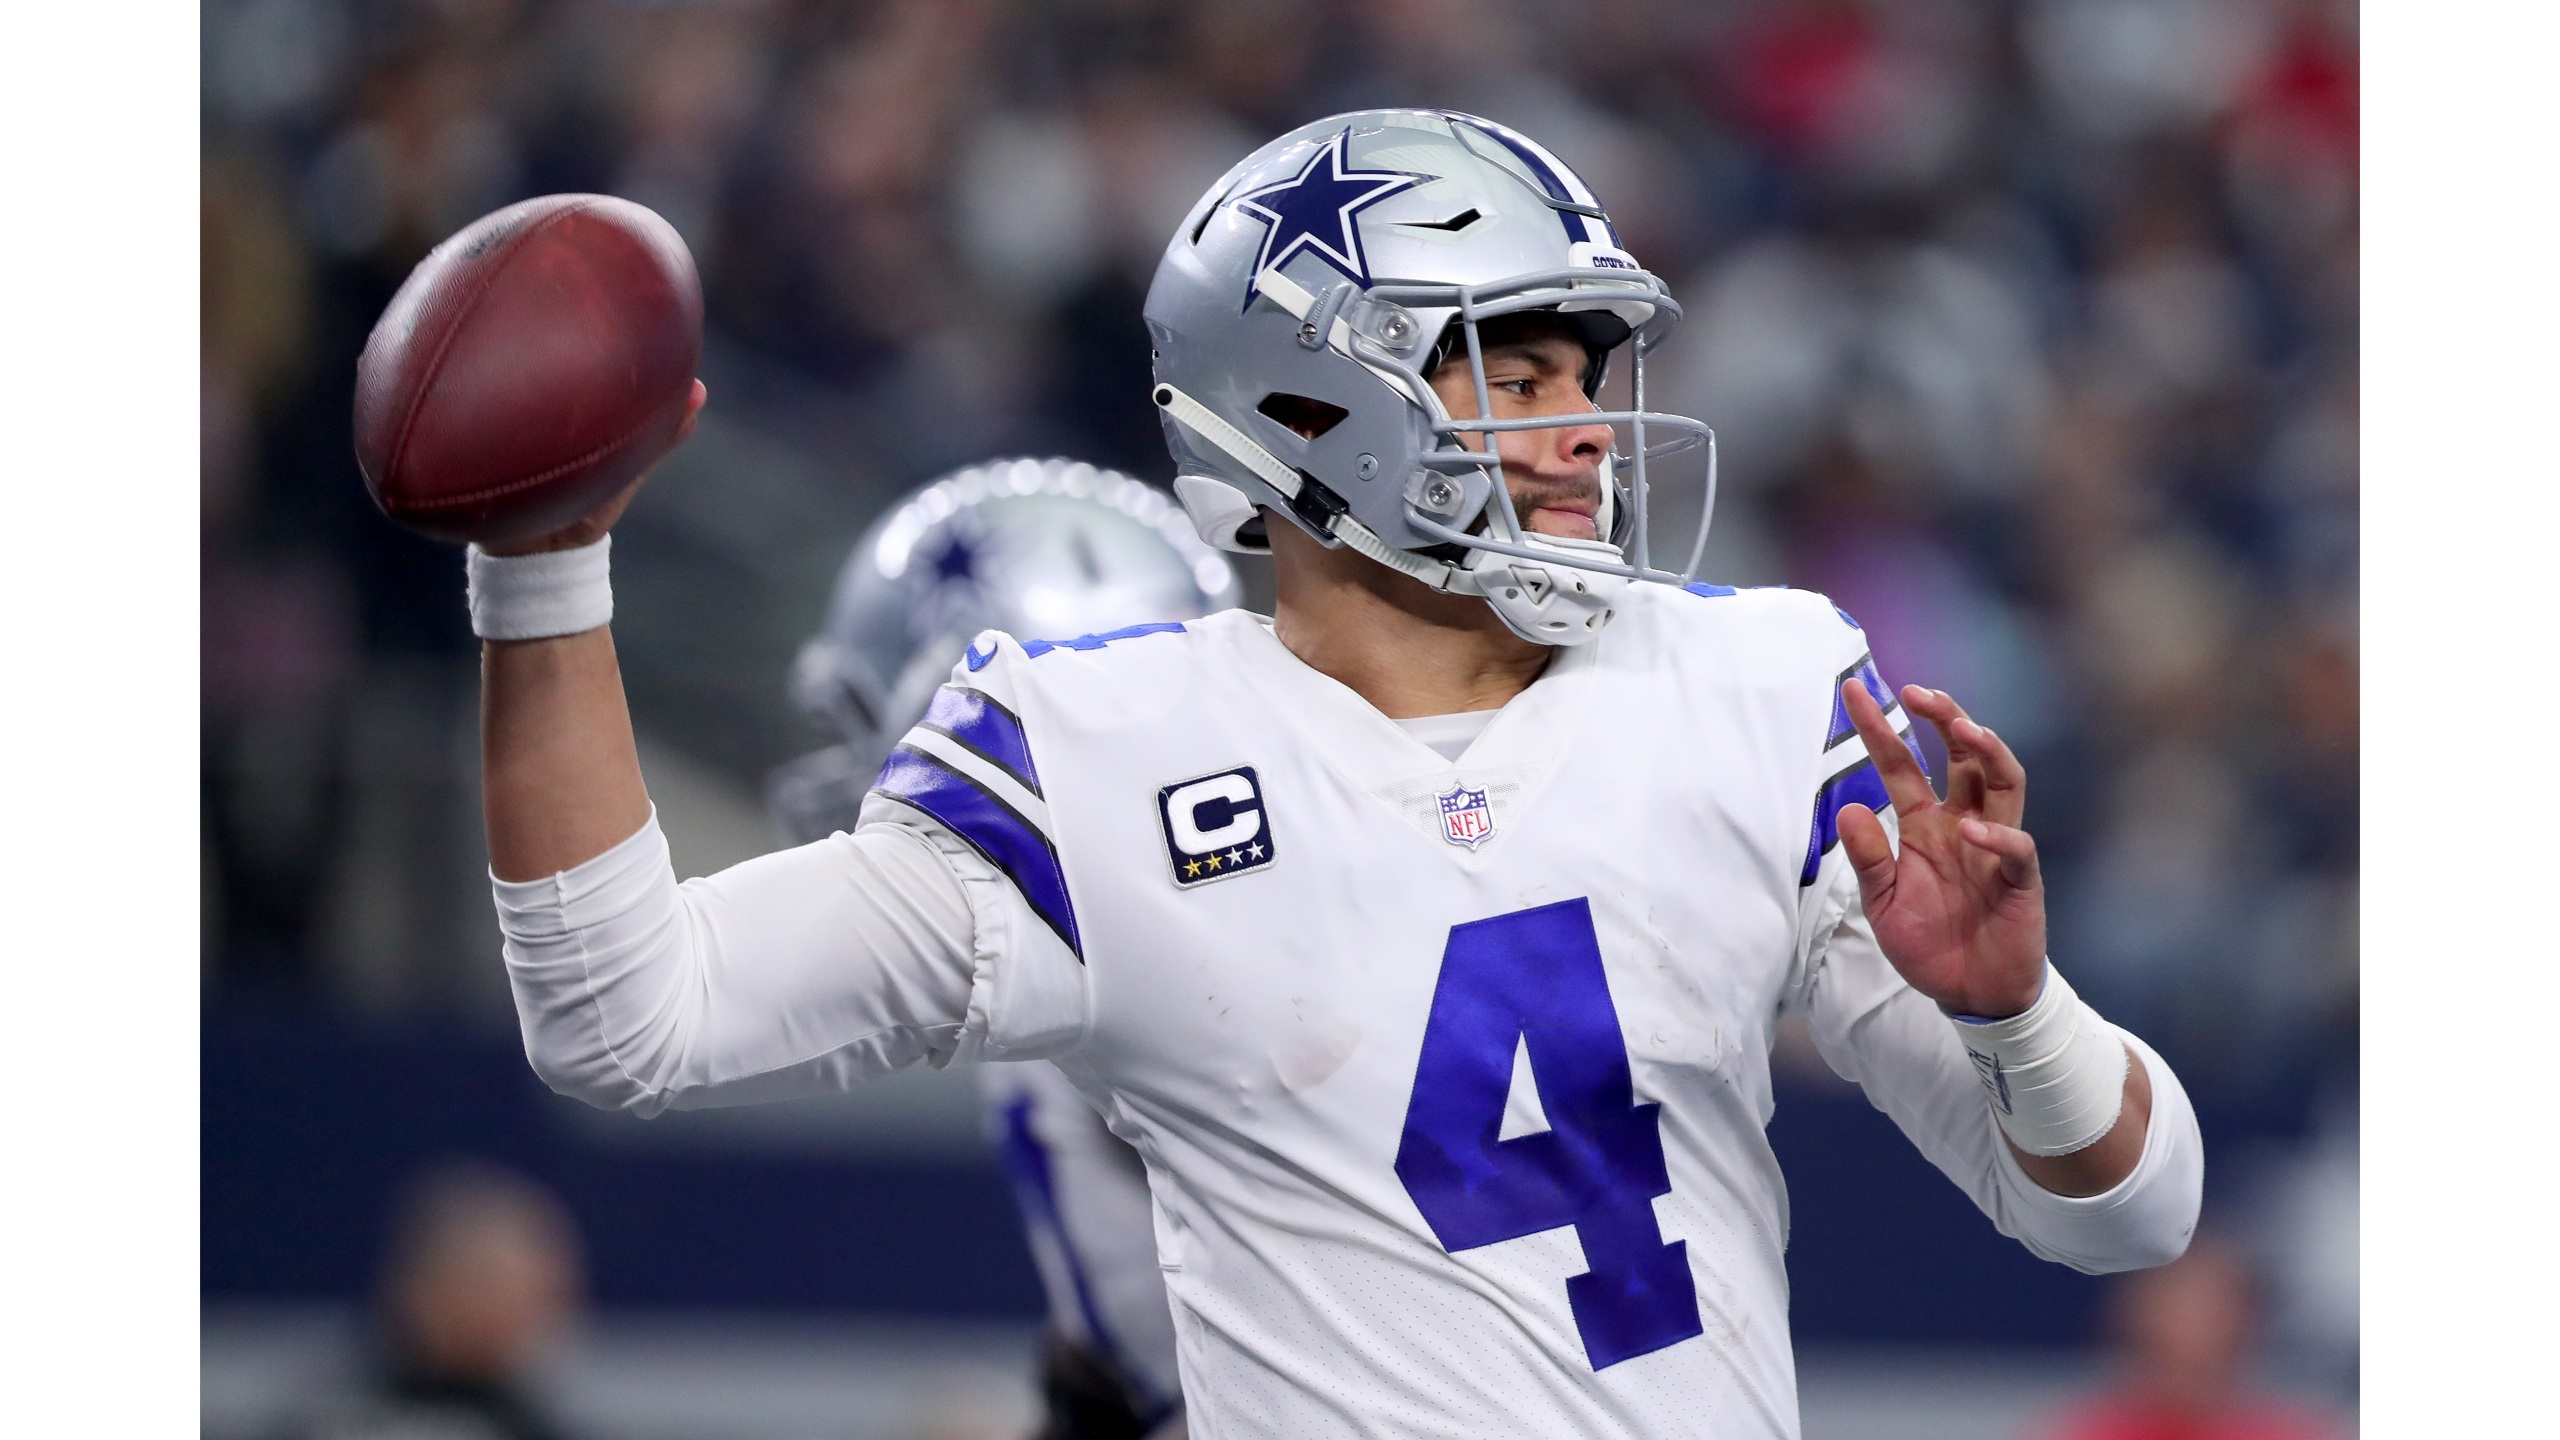 What_more_does_Dak_need_to_do_for_a_Cowb_0_20190104012010-54787063-54787063